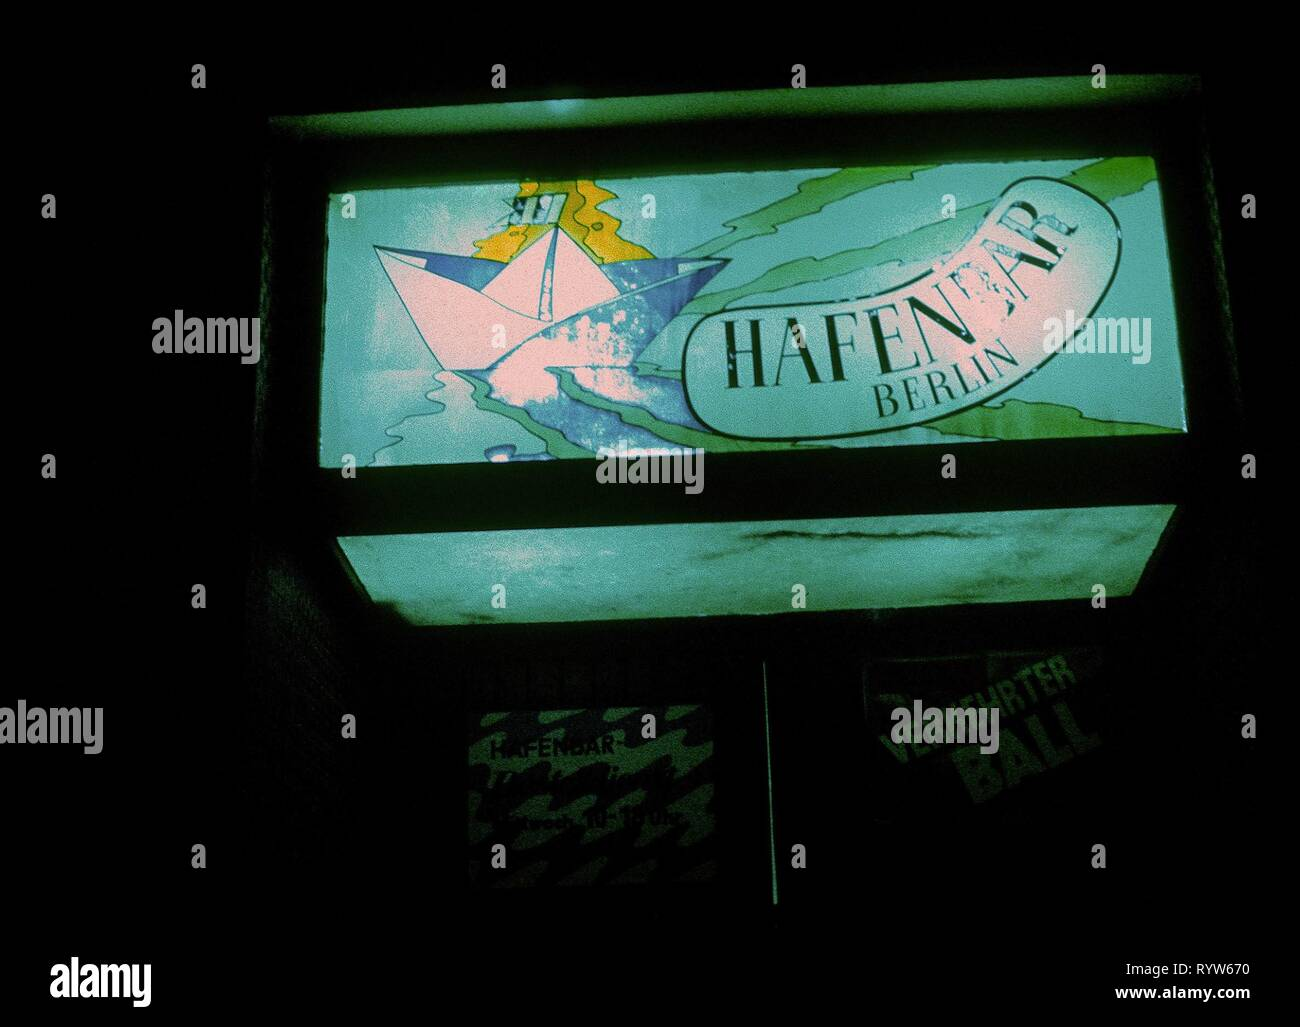 The Hafenbar (harbour bar) opened in East Berlin in 1967 in a maritime atmosphere: painted portholes, fishing net, illuminated world map, sawfish head and stuffed alligator. Circa 1982 Stock Photo